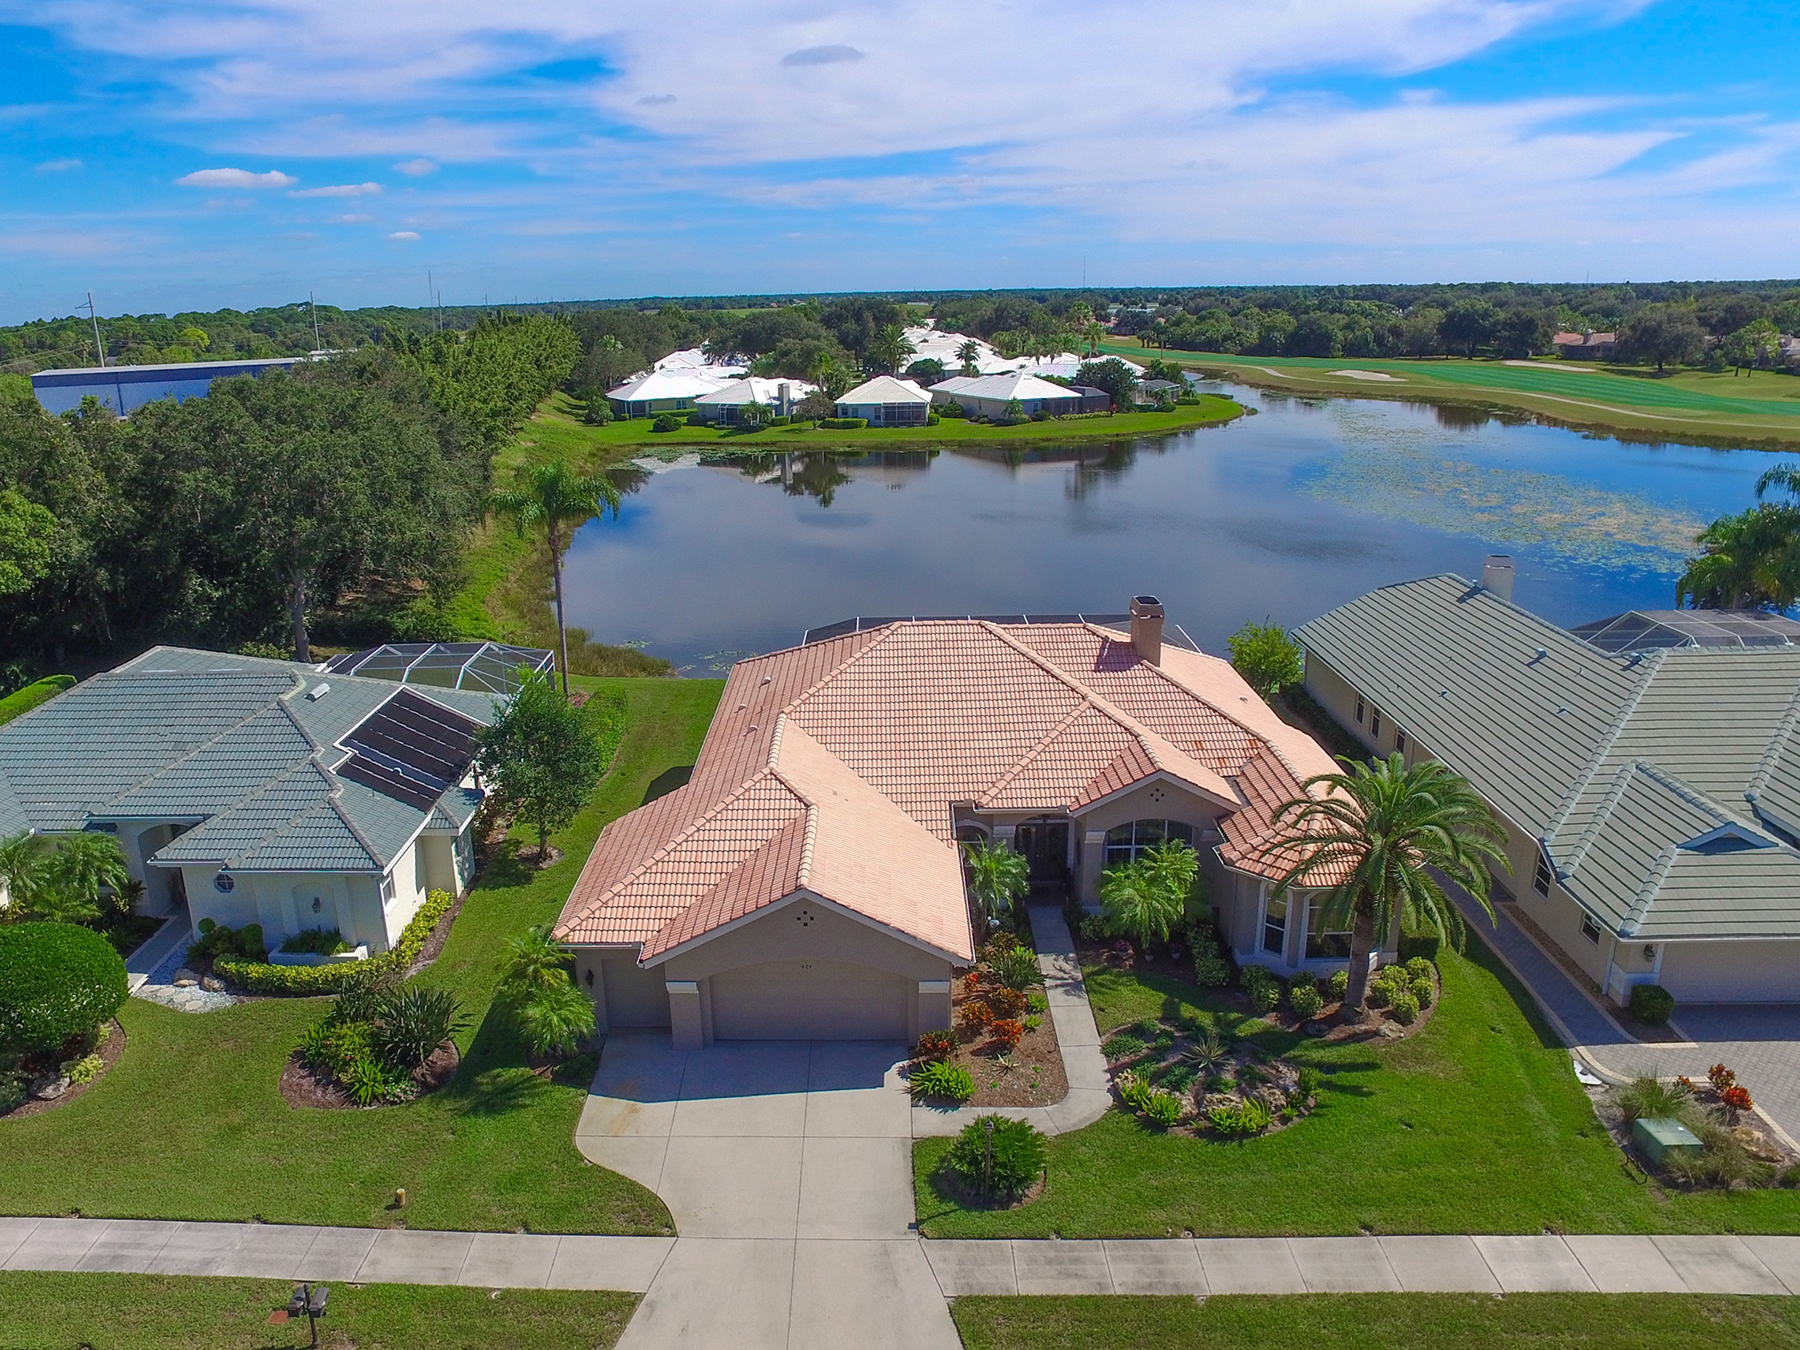 Single Family Home for Sale at VENICE GOLF & COUNTRY CLUB 424 Autumn Chase Dr Venice, Florida, 34292 United States